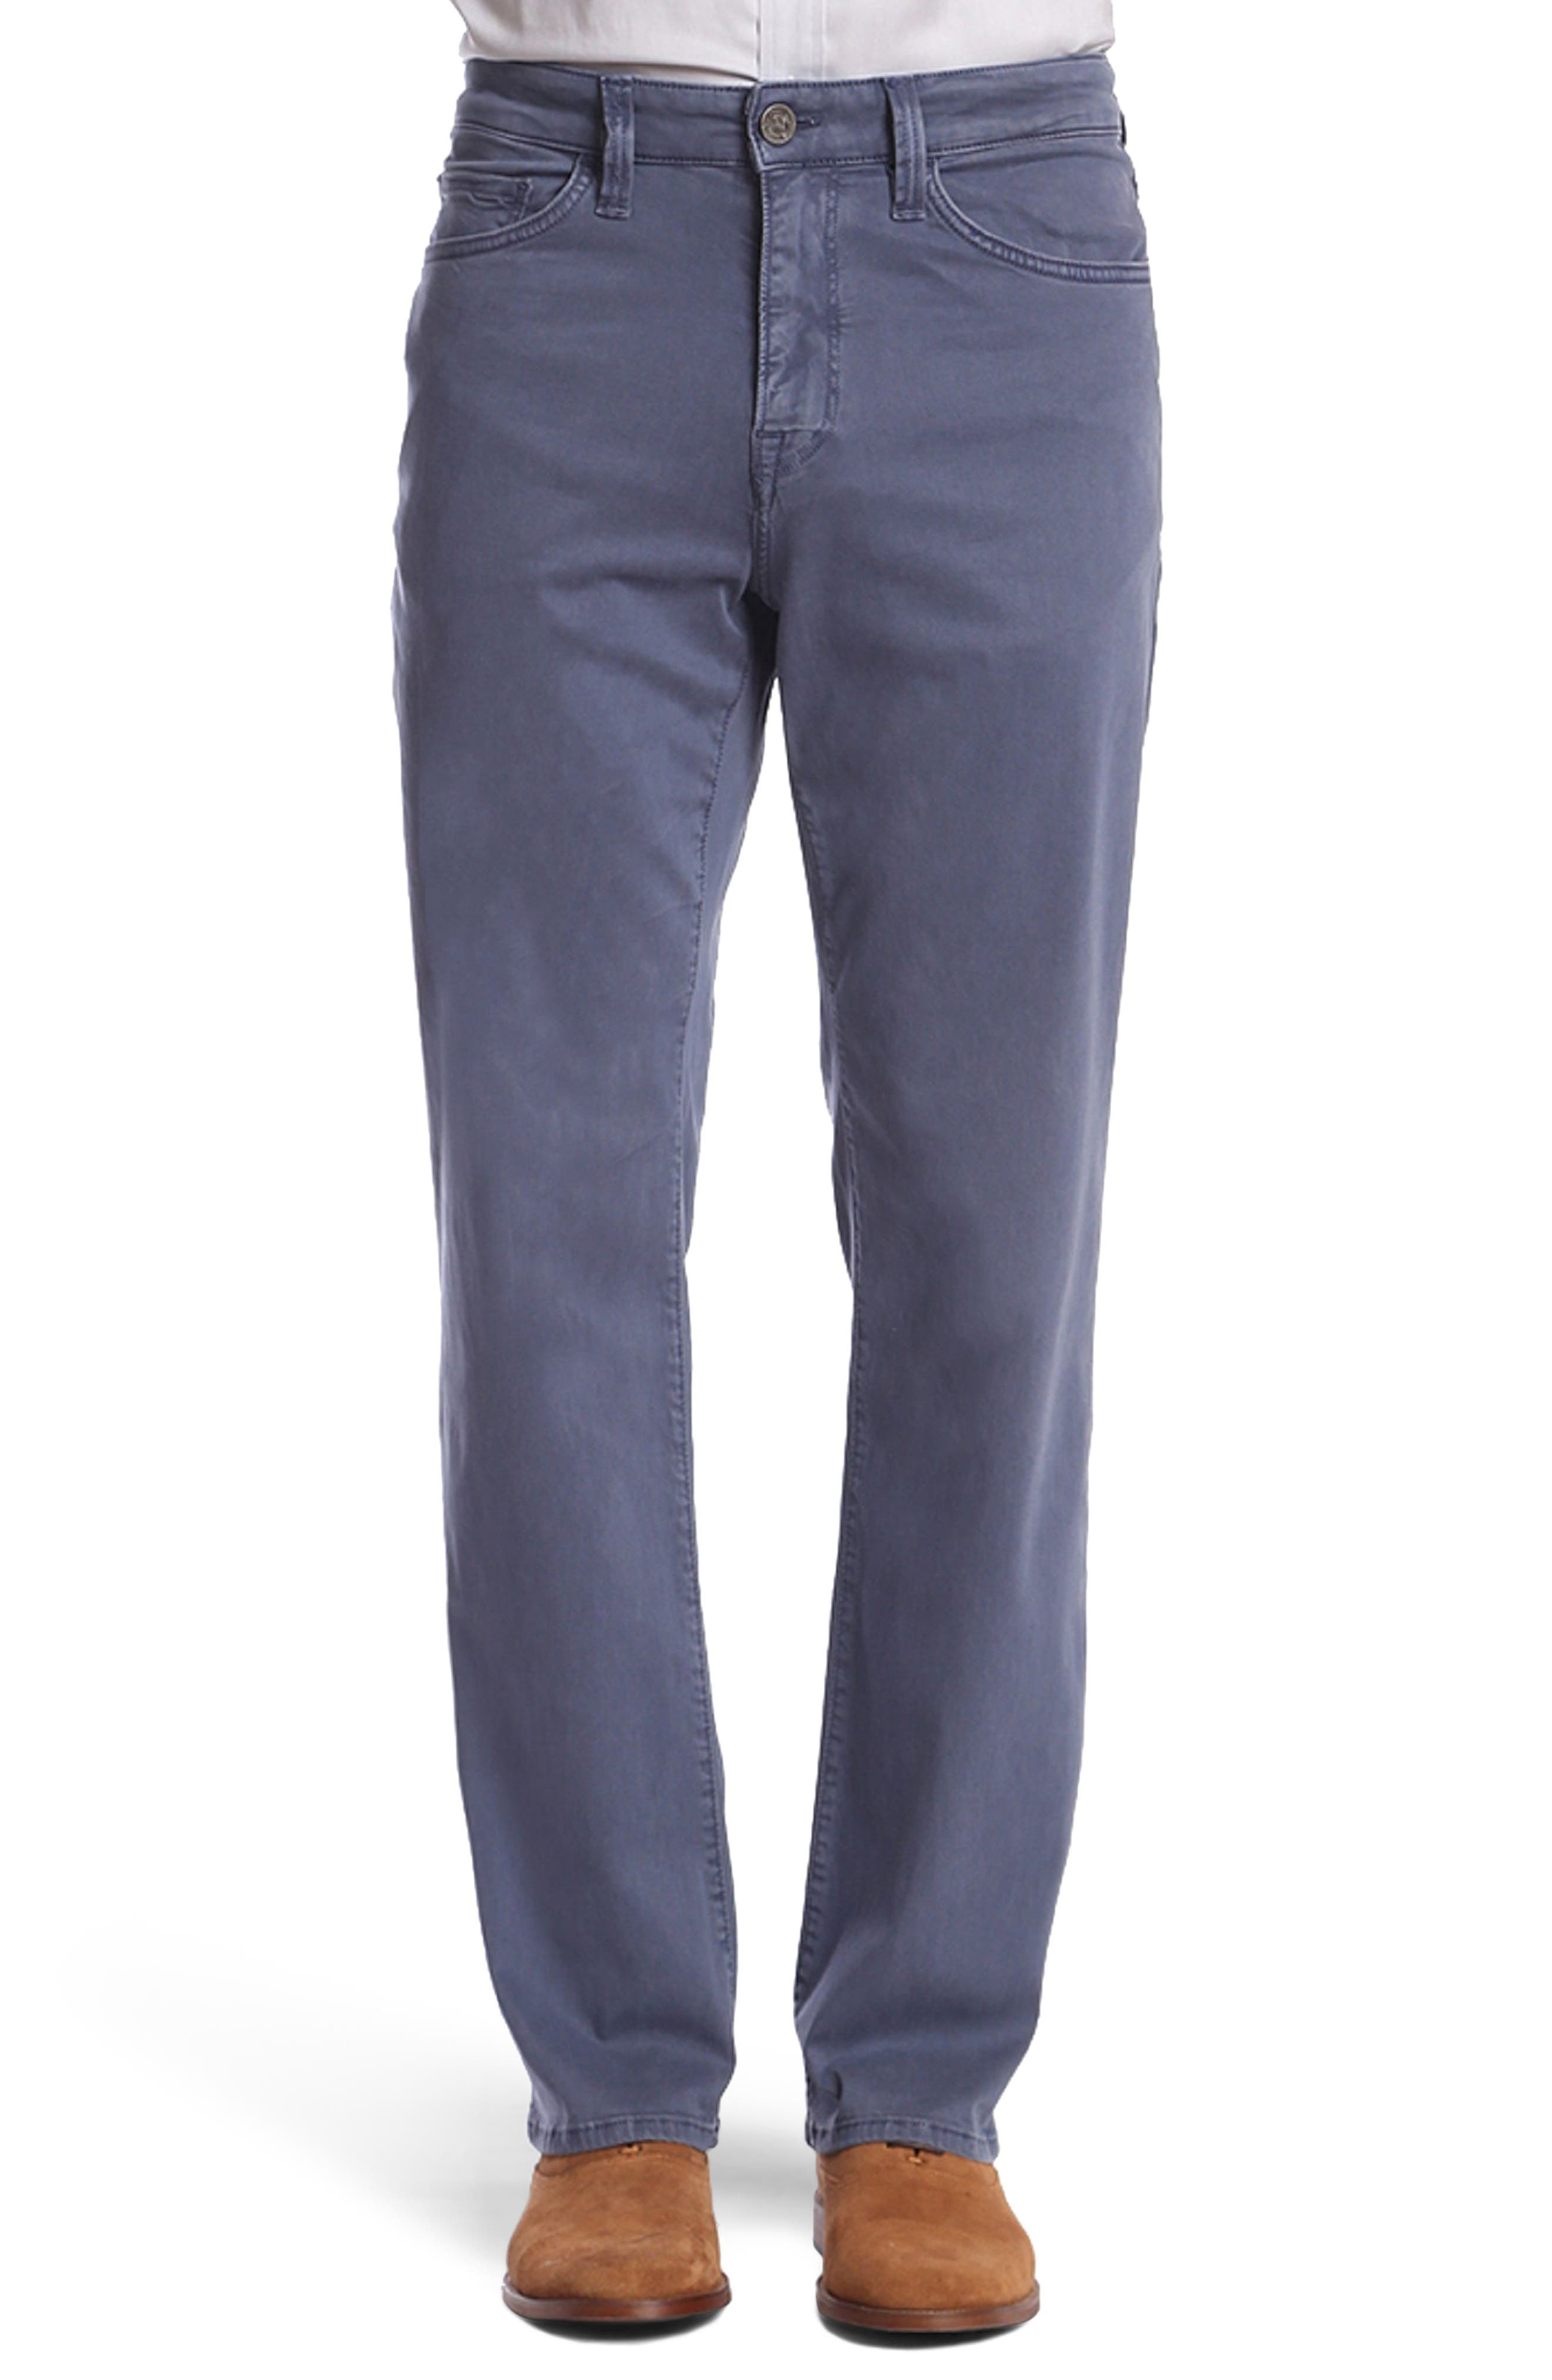 Charisma Relaxed Fit Jeans,                         Main,                         color, Horizon Twill